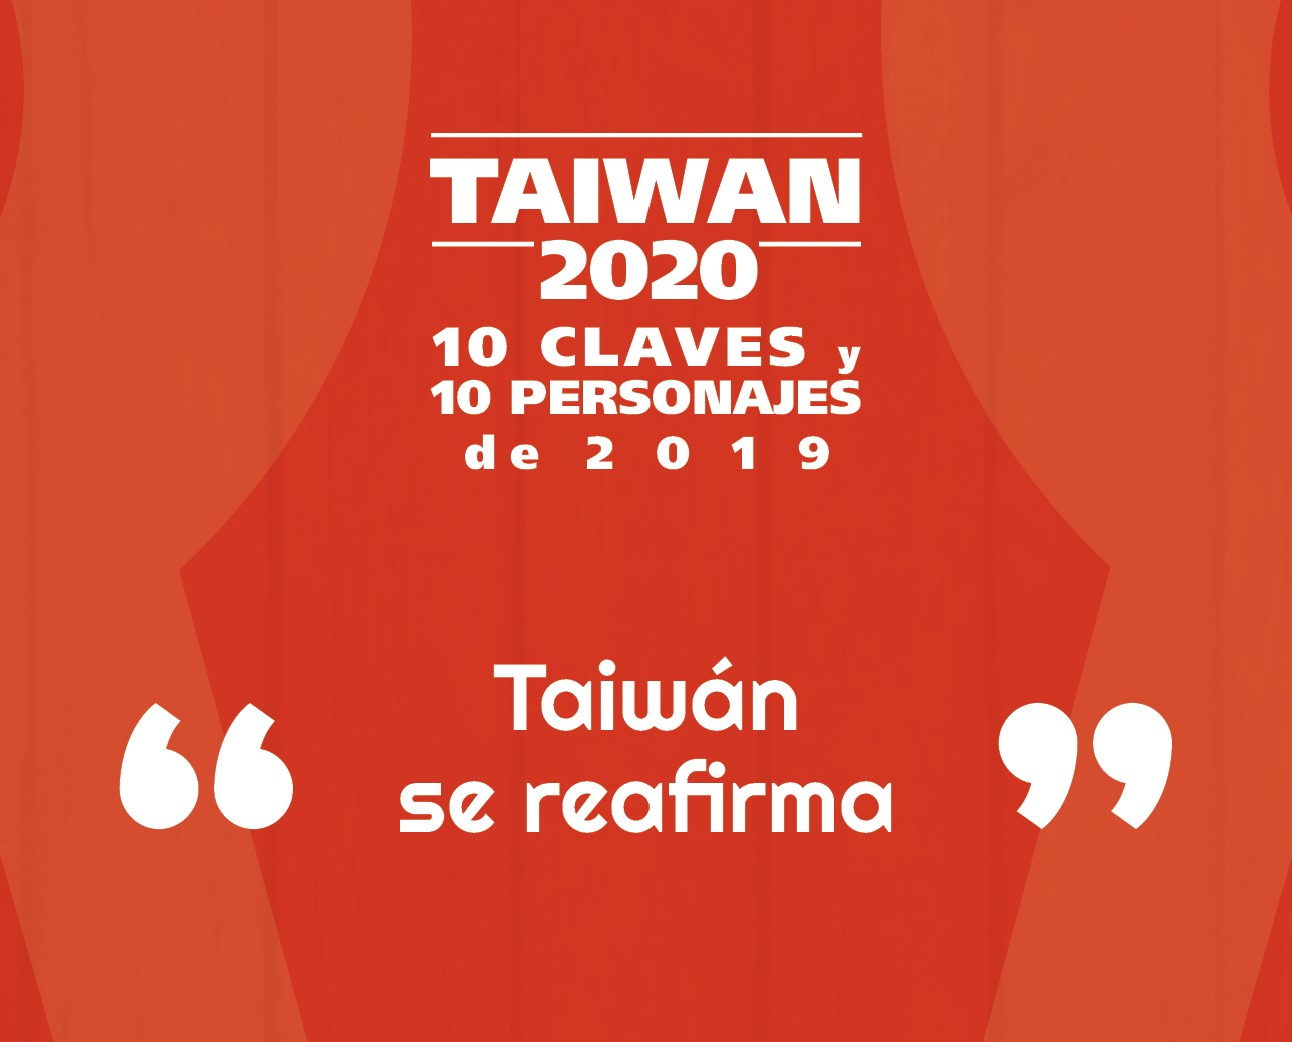 Taiwan: 10 claves y 10 personajes